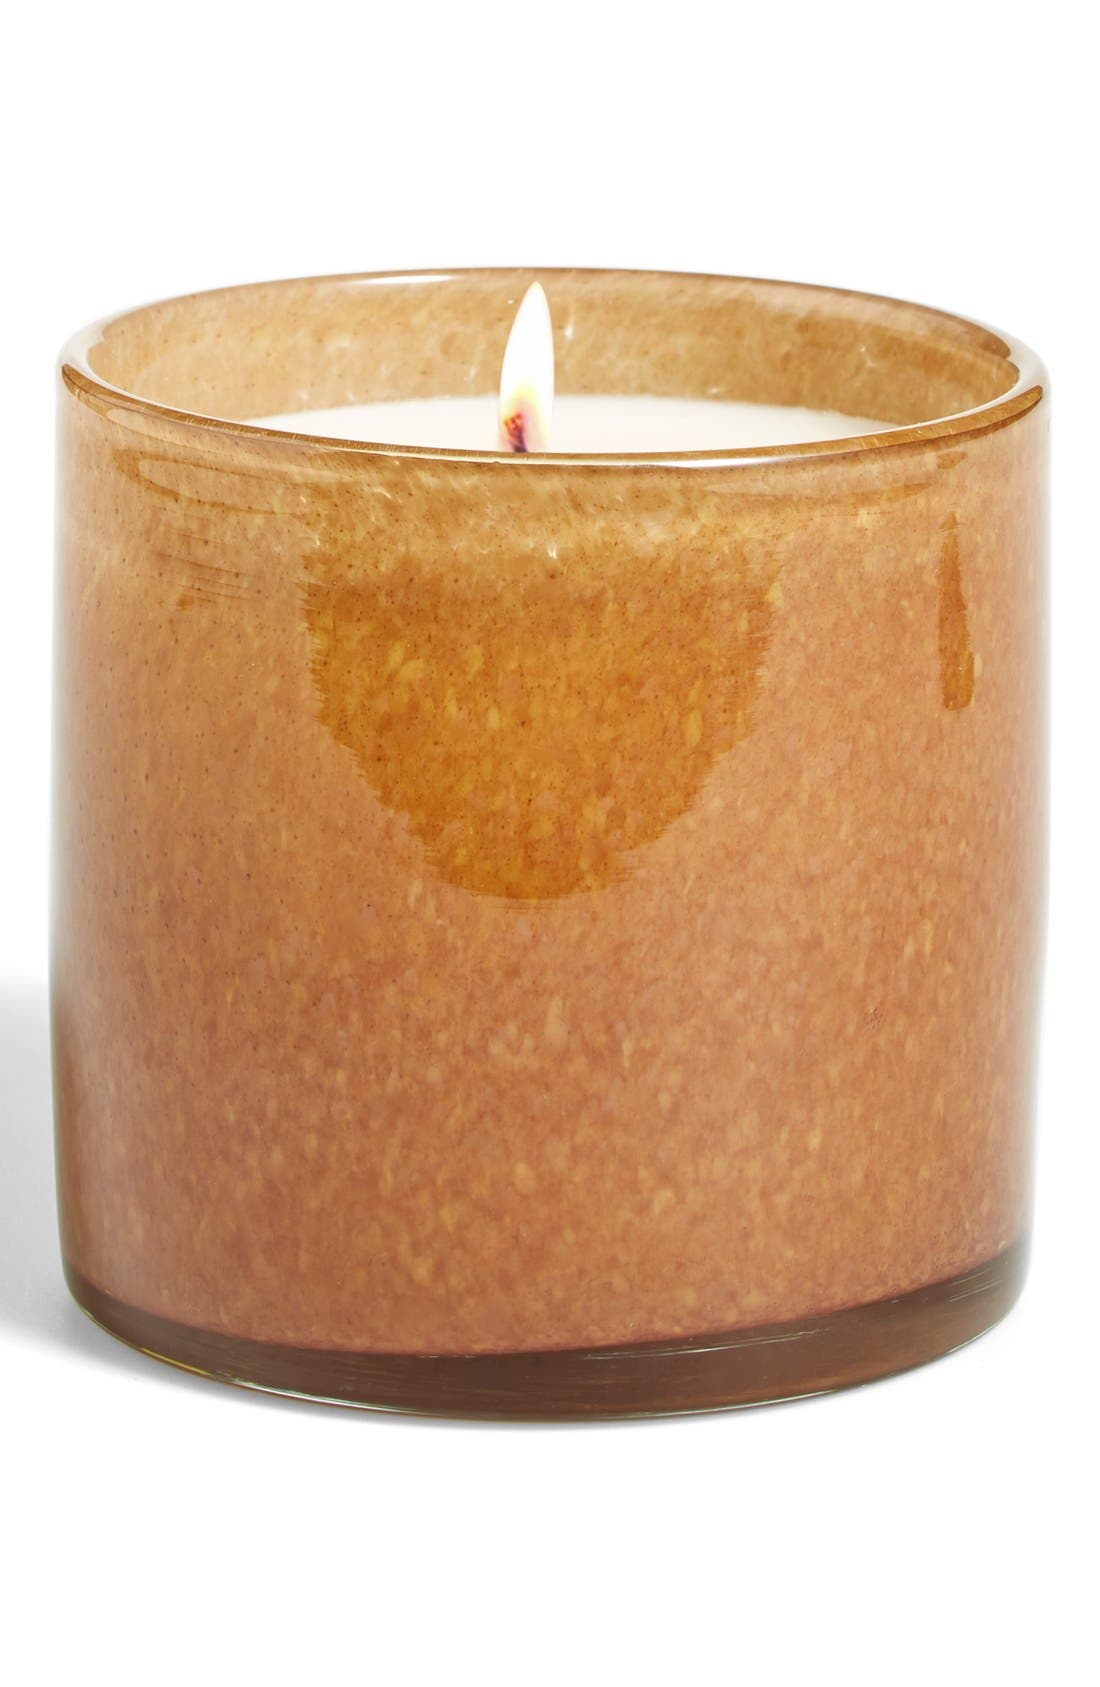 'Amber Black Vanilla - Foyer' Candle,                             Main thumbnail 1, color,                             No Color